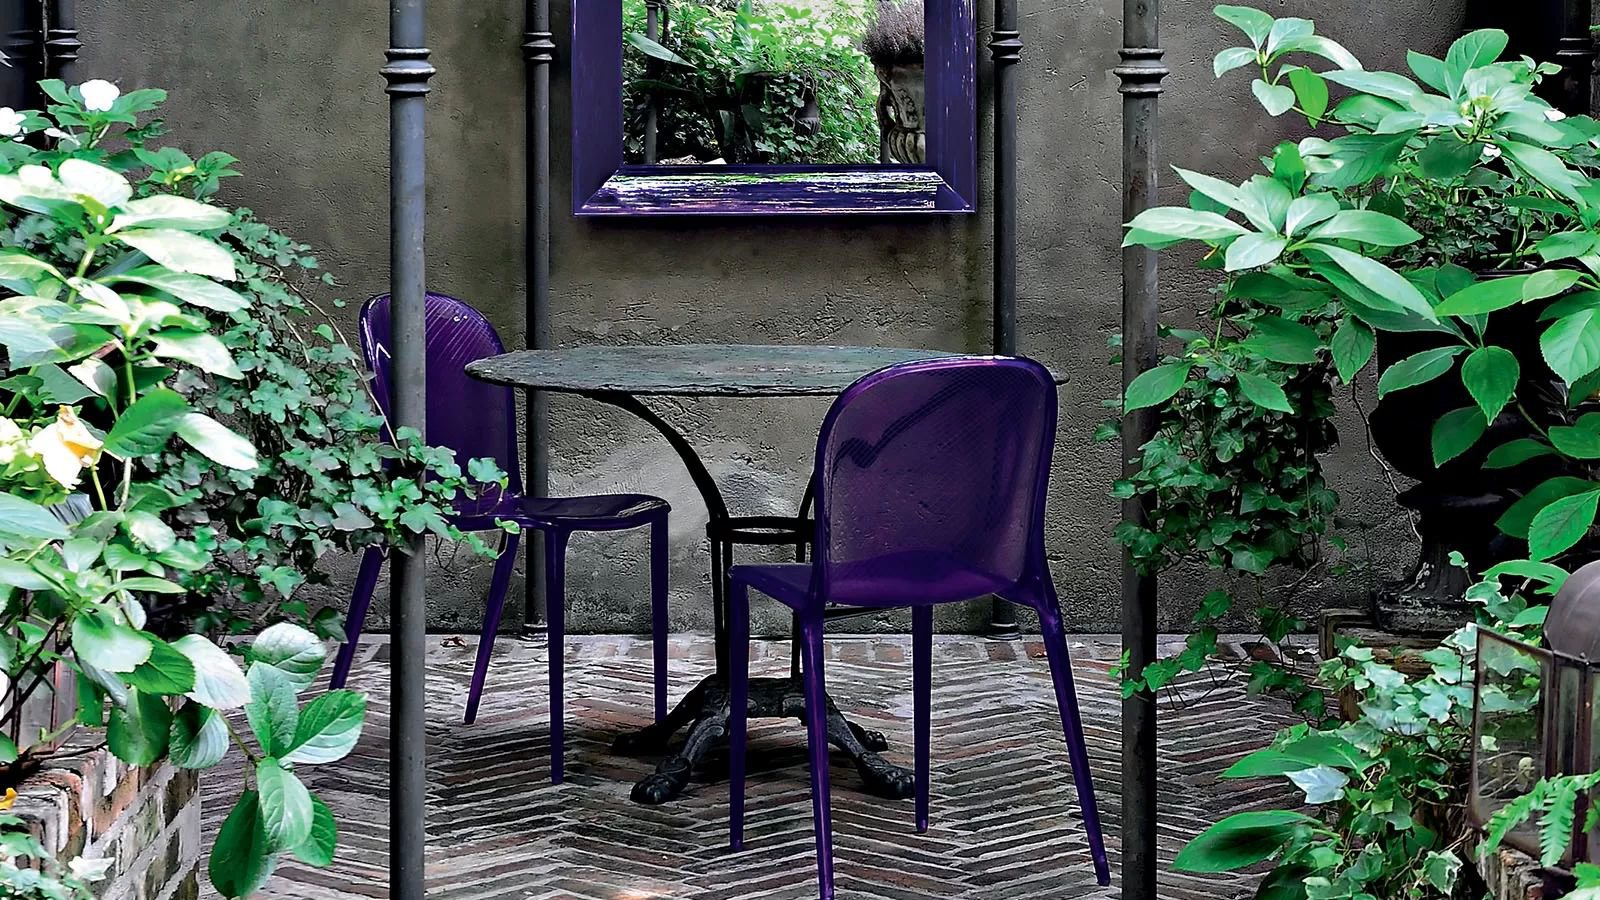 Thalya chair from Kartell, designed by Patrick Jouin